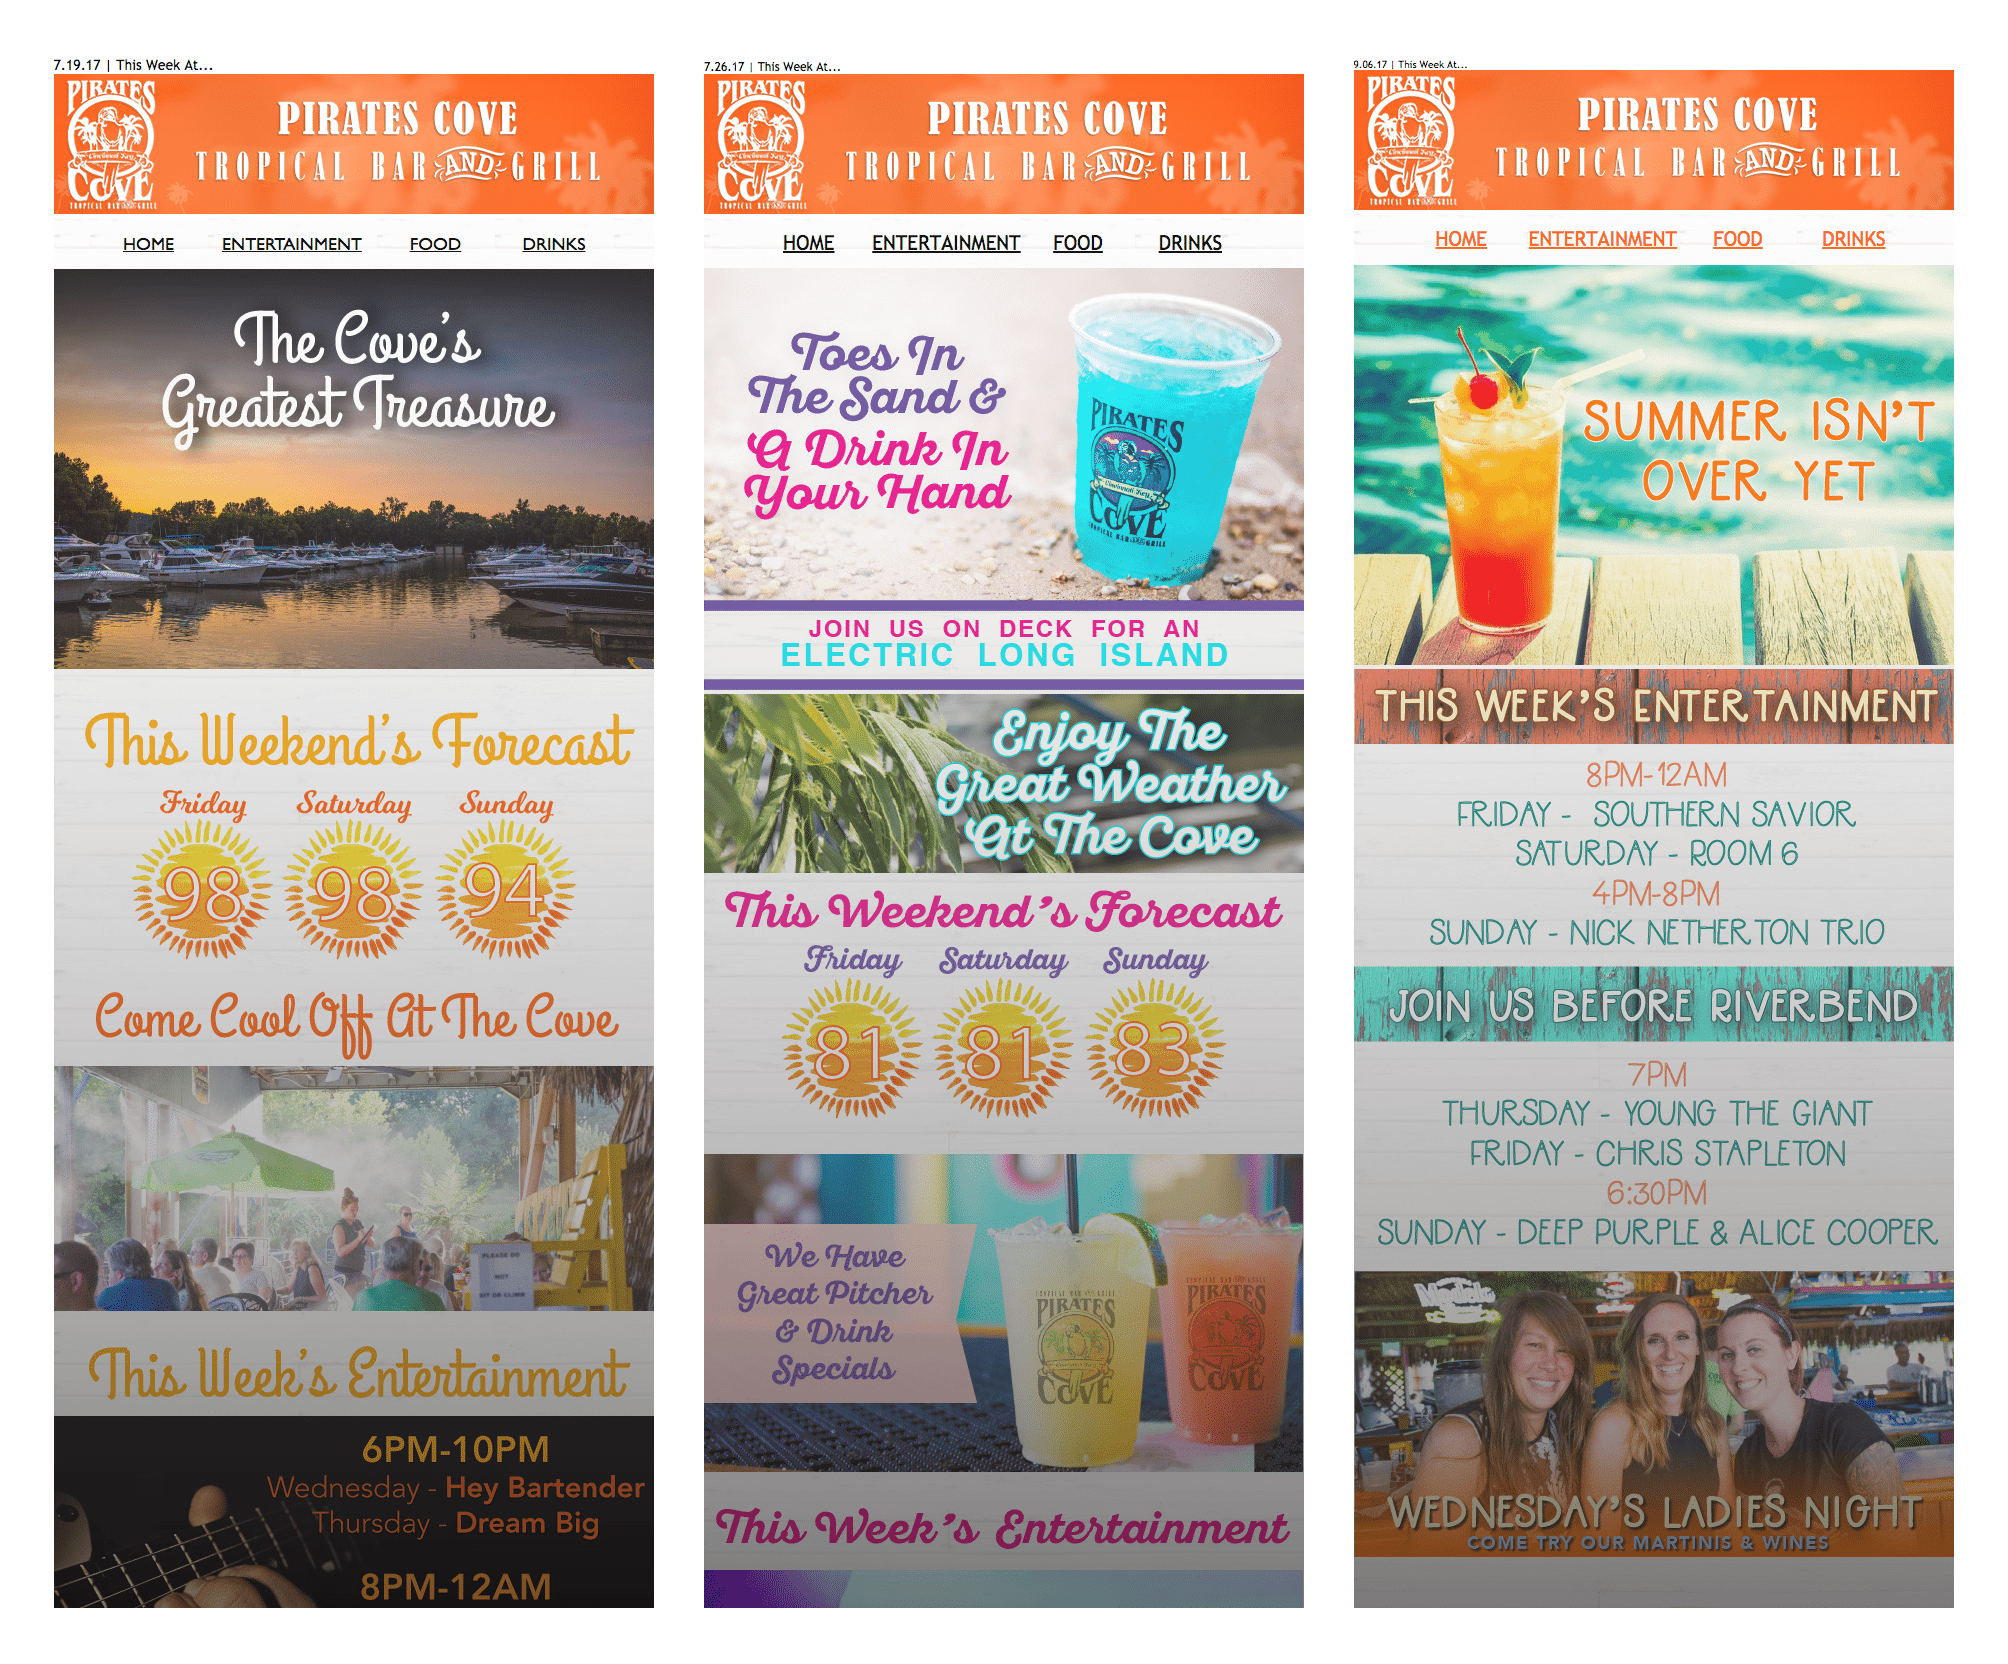 Pirate's cove coupons atlanta